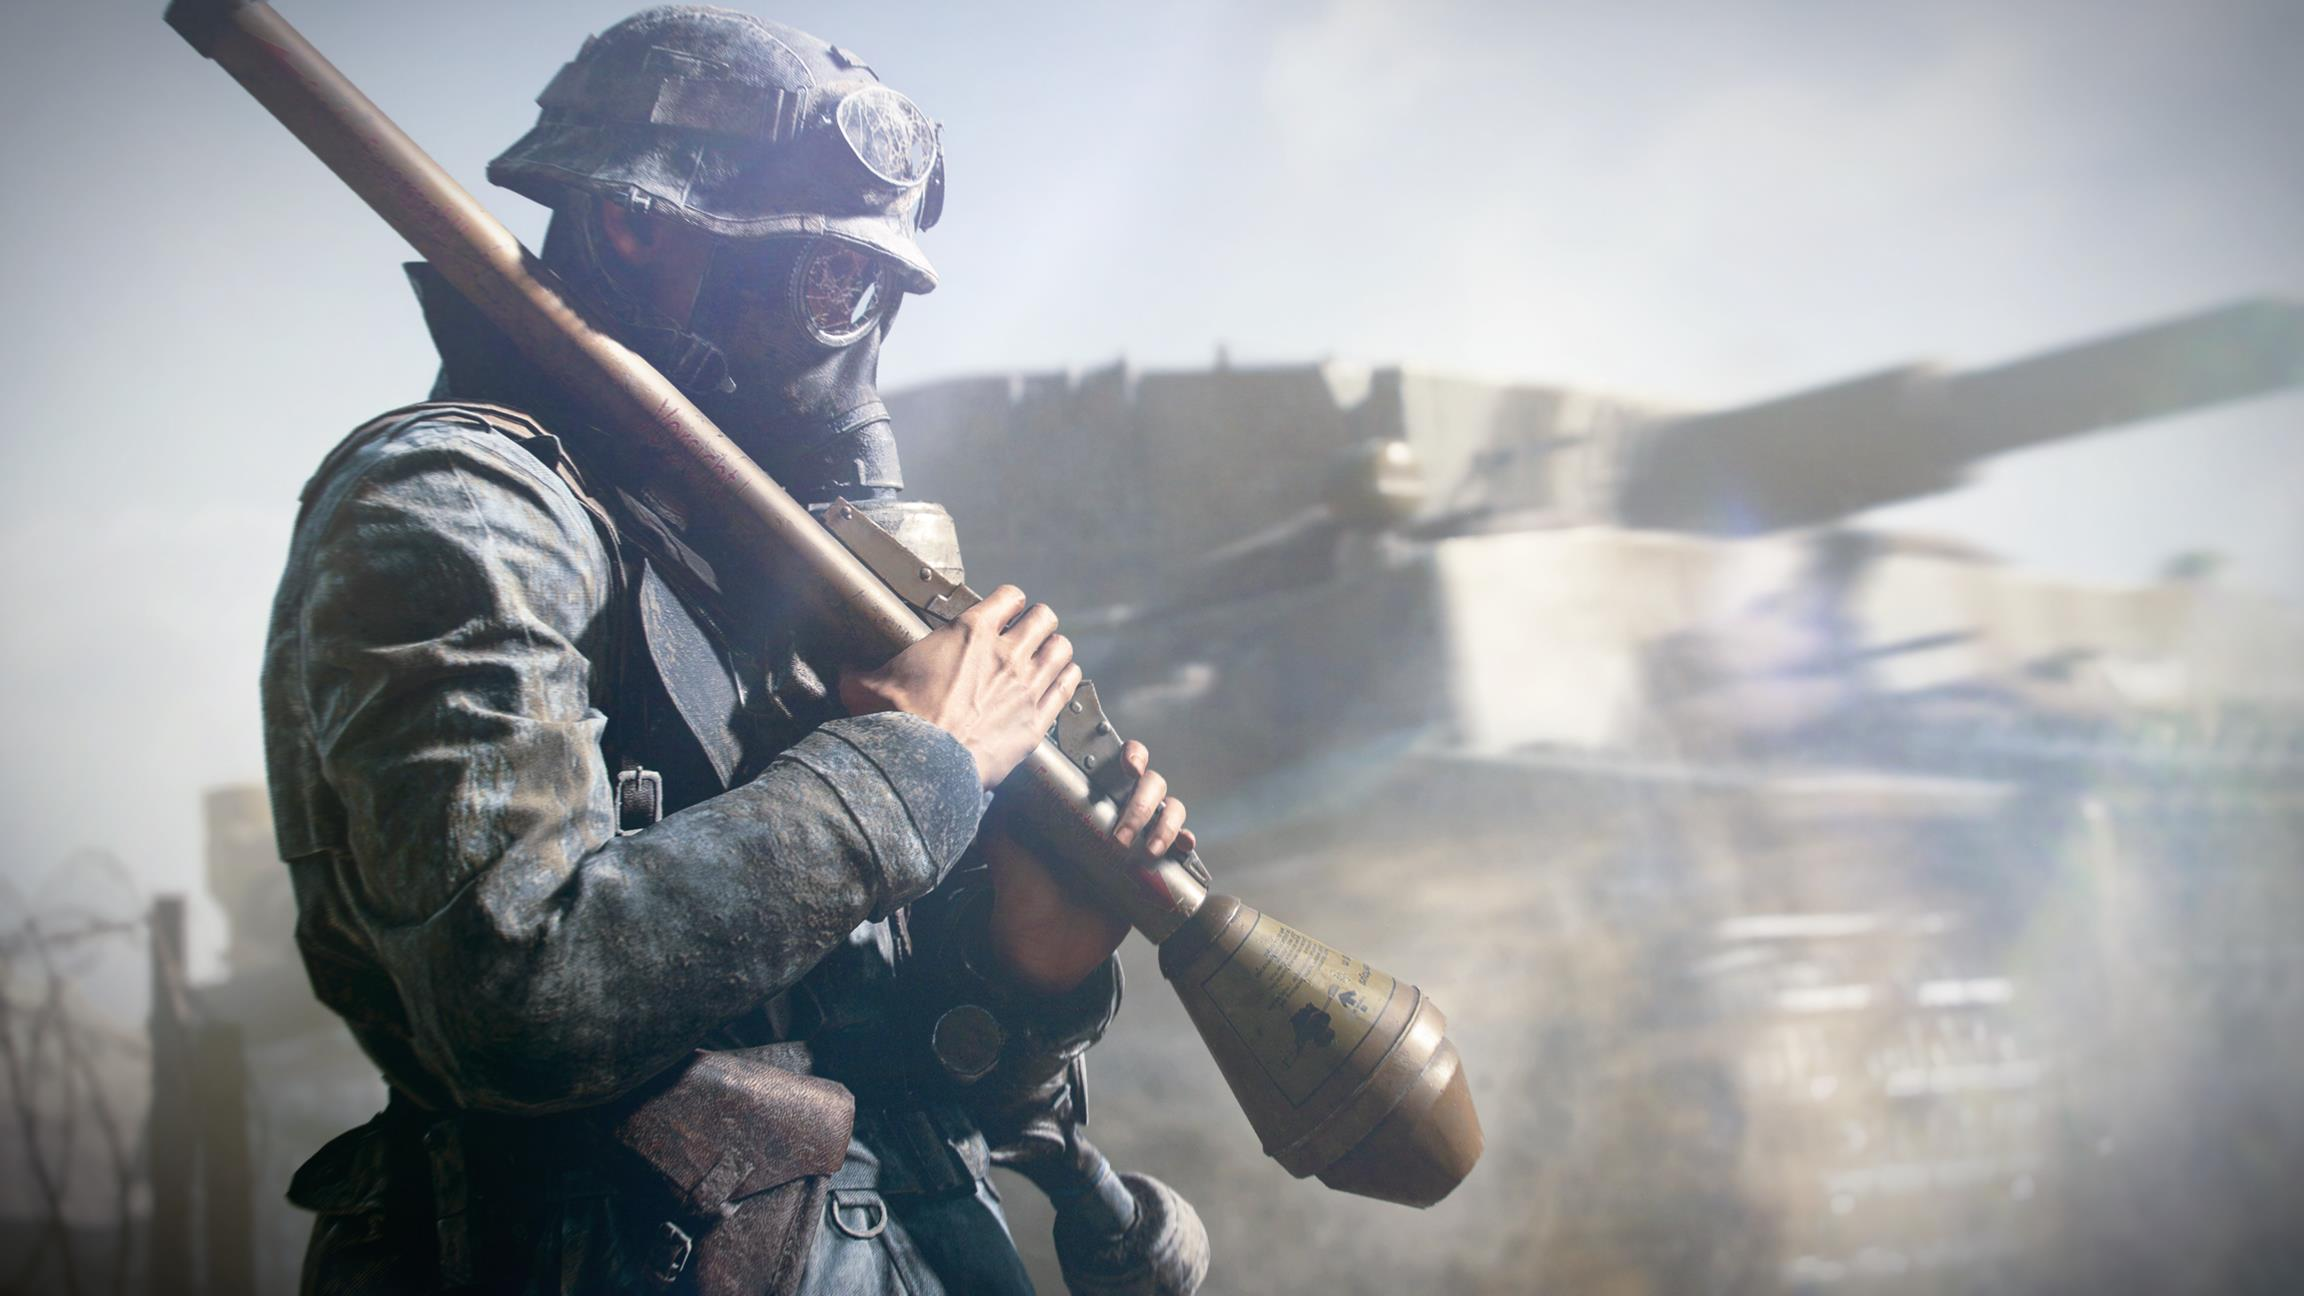 Rented private servers are finally coming to Battlefield 5